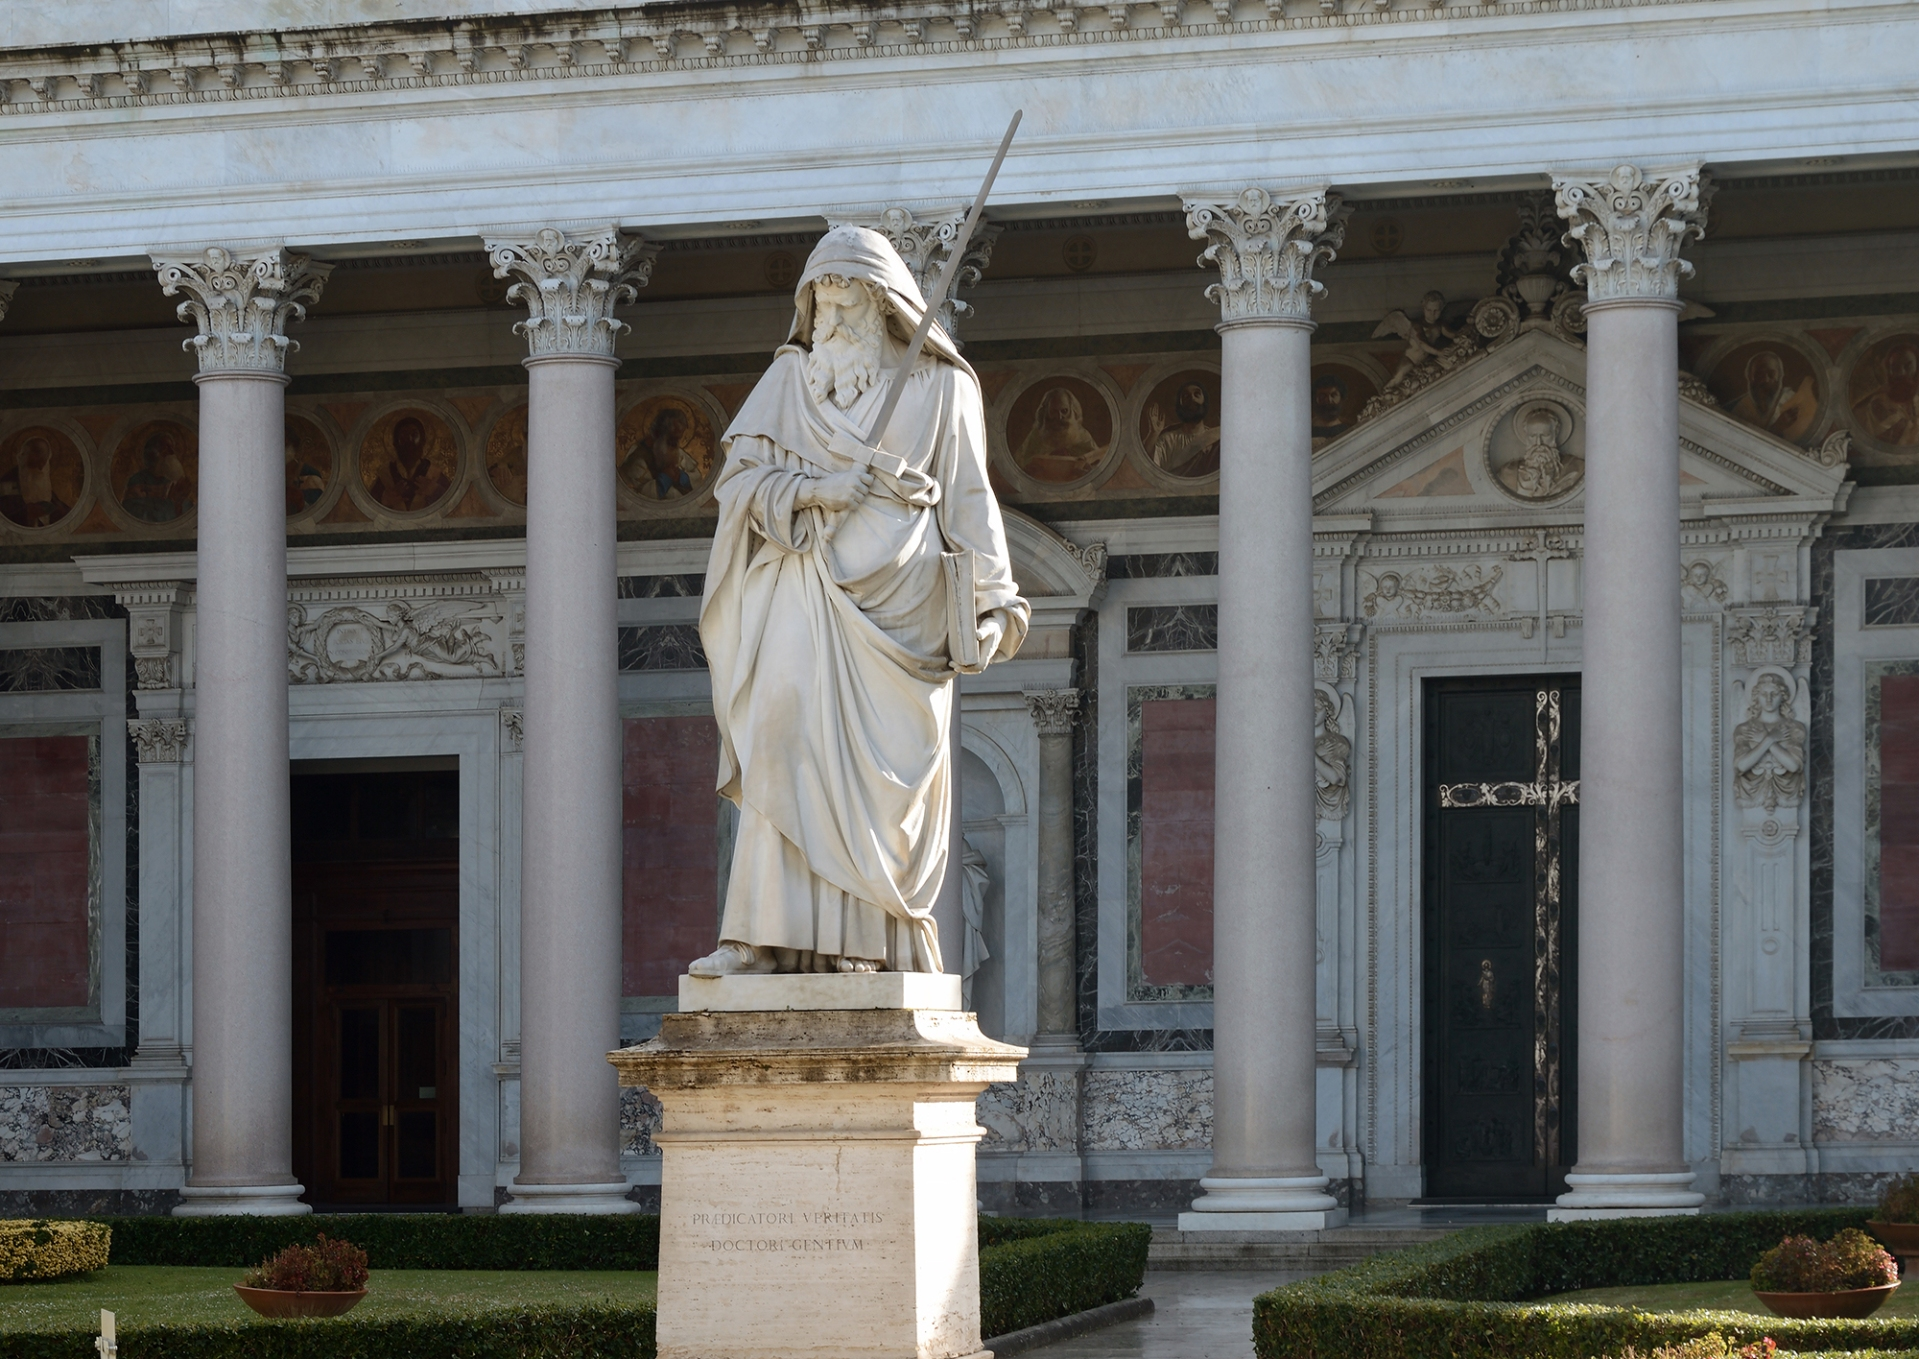 https://wp.en.aleteia.org/wp-content/uploads/sites/2/2021/01/WEB3-Statue_and_Colonnade_of_Saint_Paul_in_Rome-WIKI.jpg?w=1920